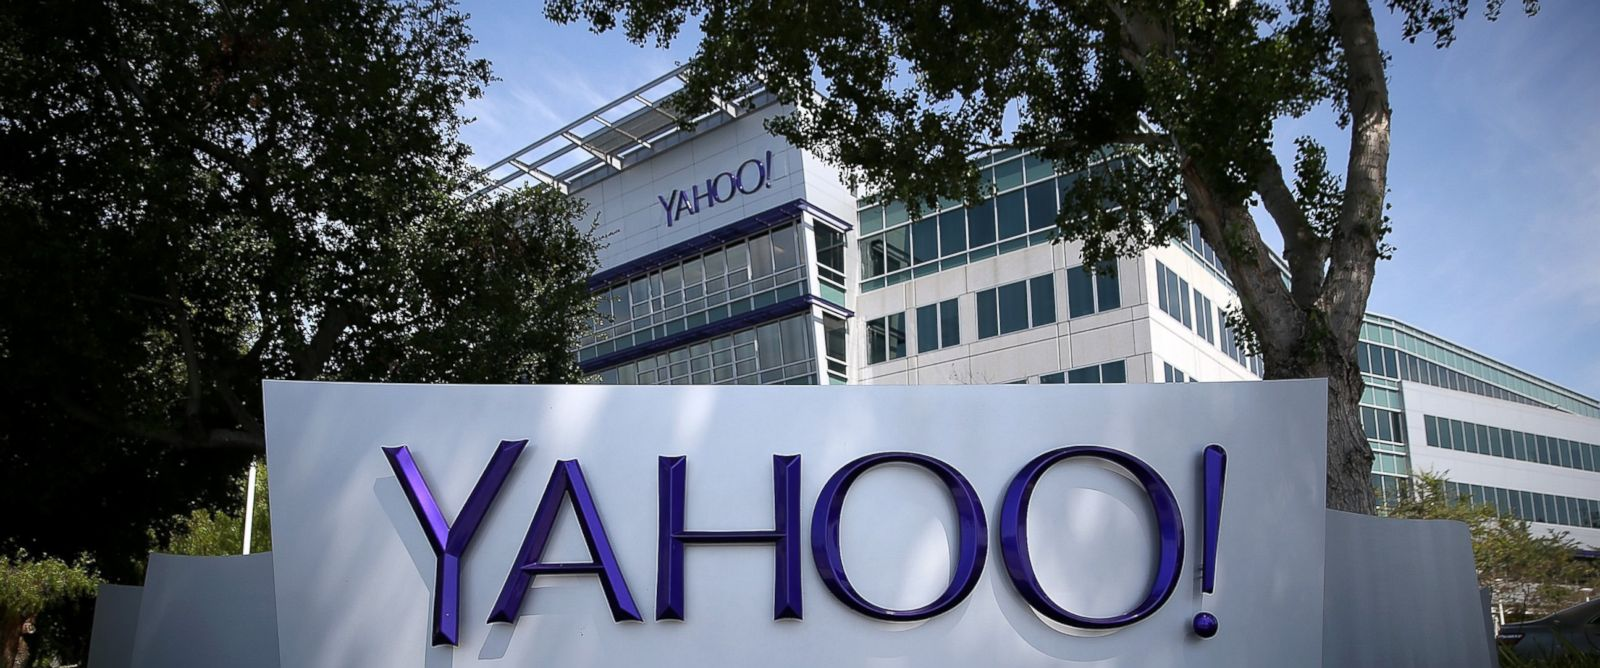 Yahoo news - Why So Many Companies Are Interested In Buying Yahoo